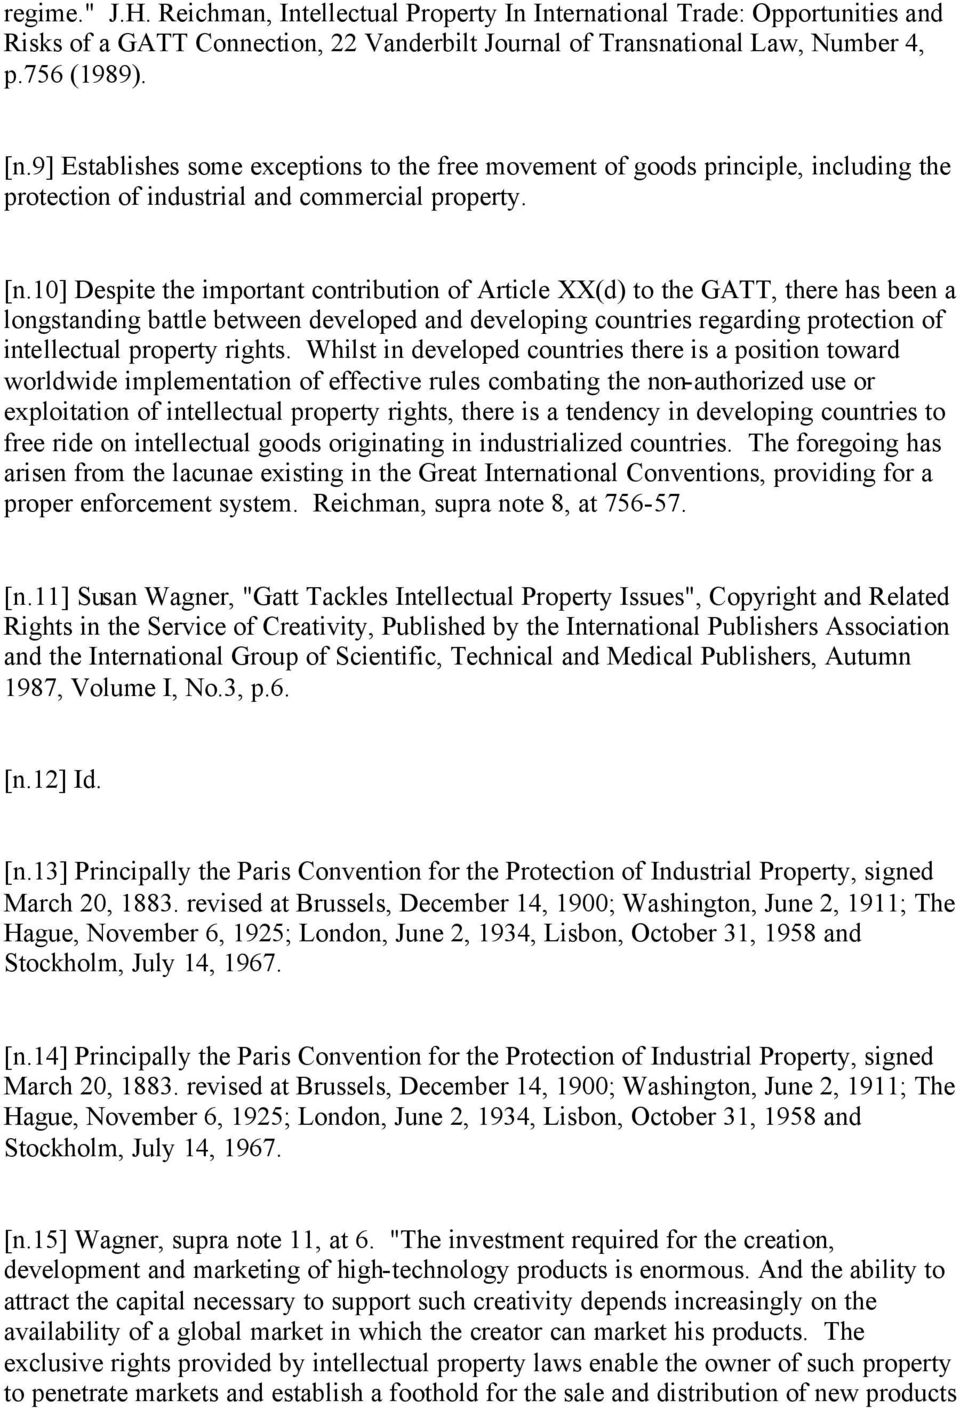 10] Despite the important contribution of Article XX(d) to the GATT, there has been a longstanding battle between developed and developing countries regarding protection of intellectual property